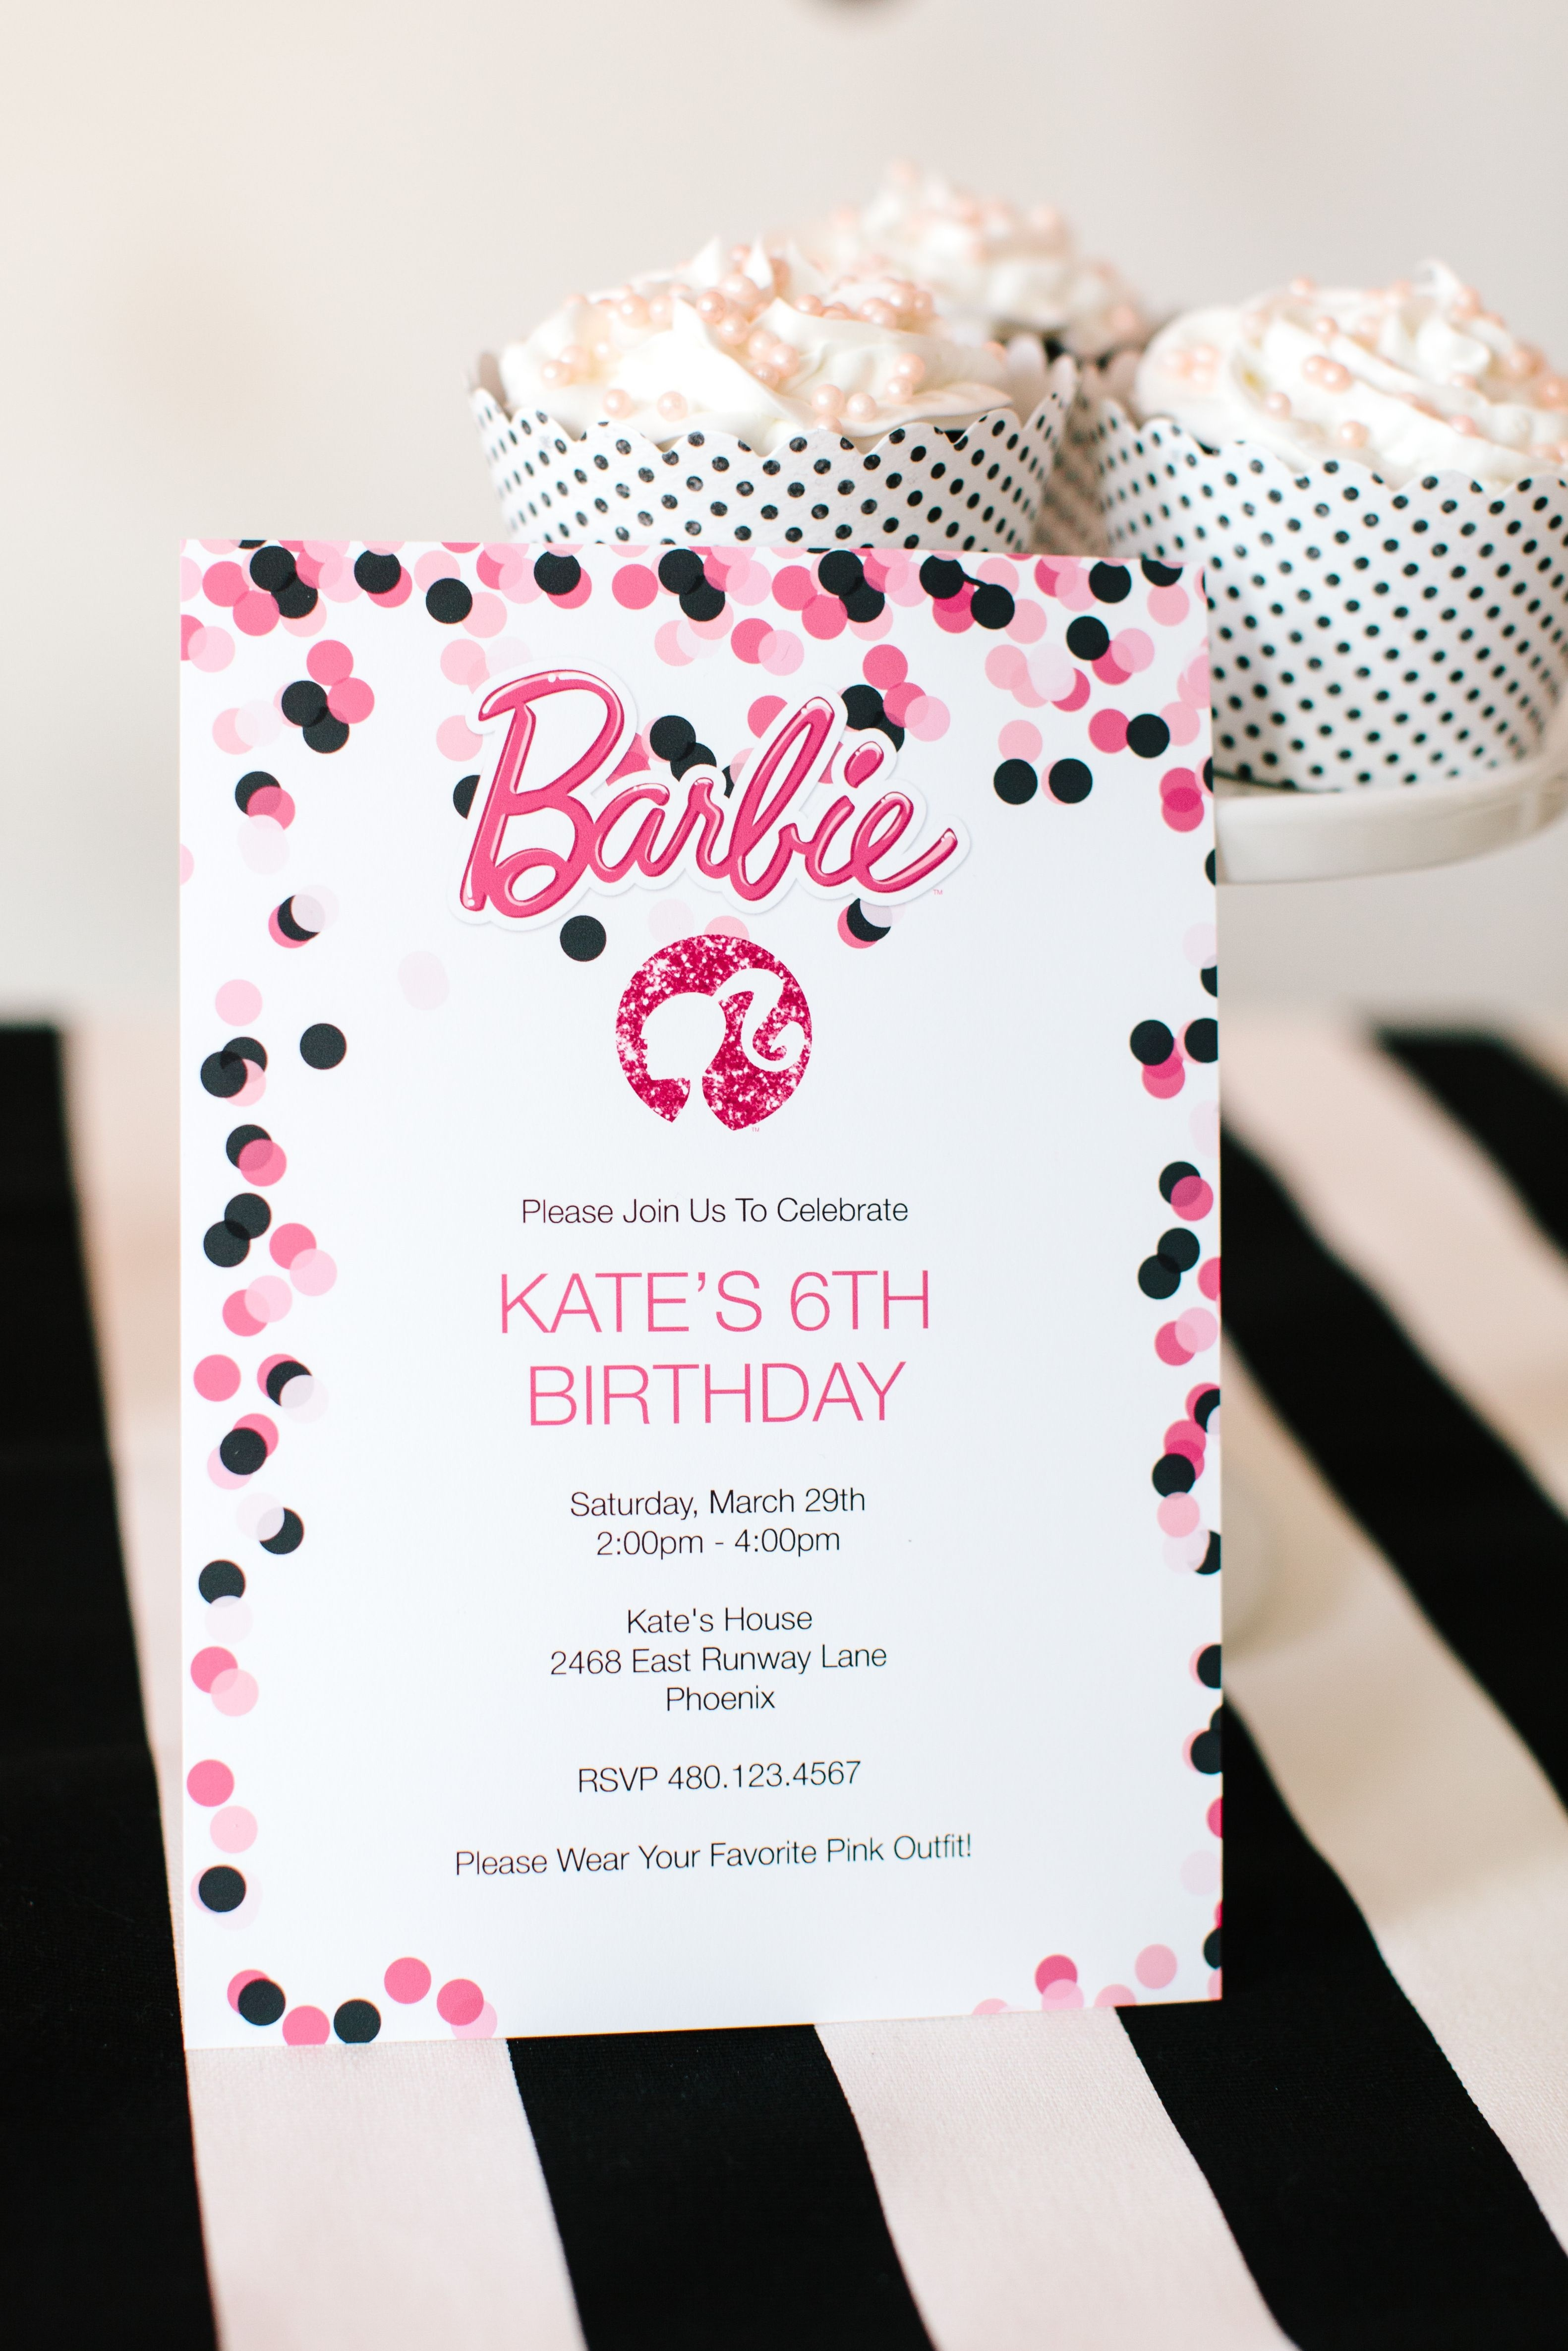 Barbie Birthday Party With Free Printable Barbie Designs - Free Printable Polka Dot Birthday Party Invitations